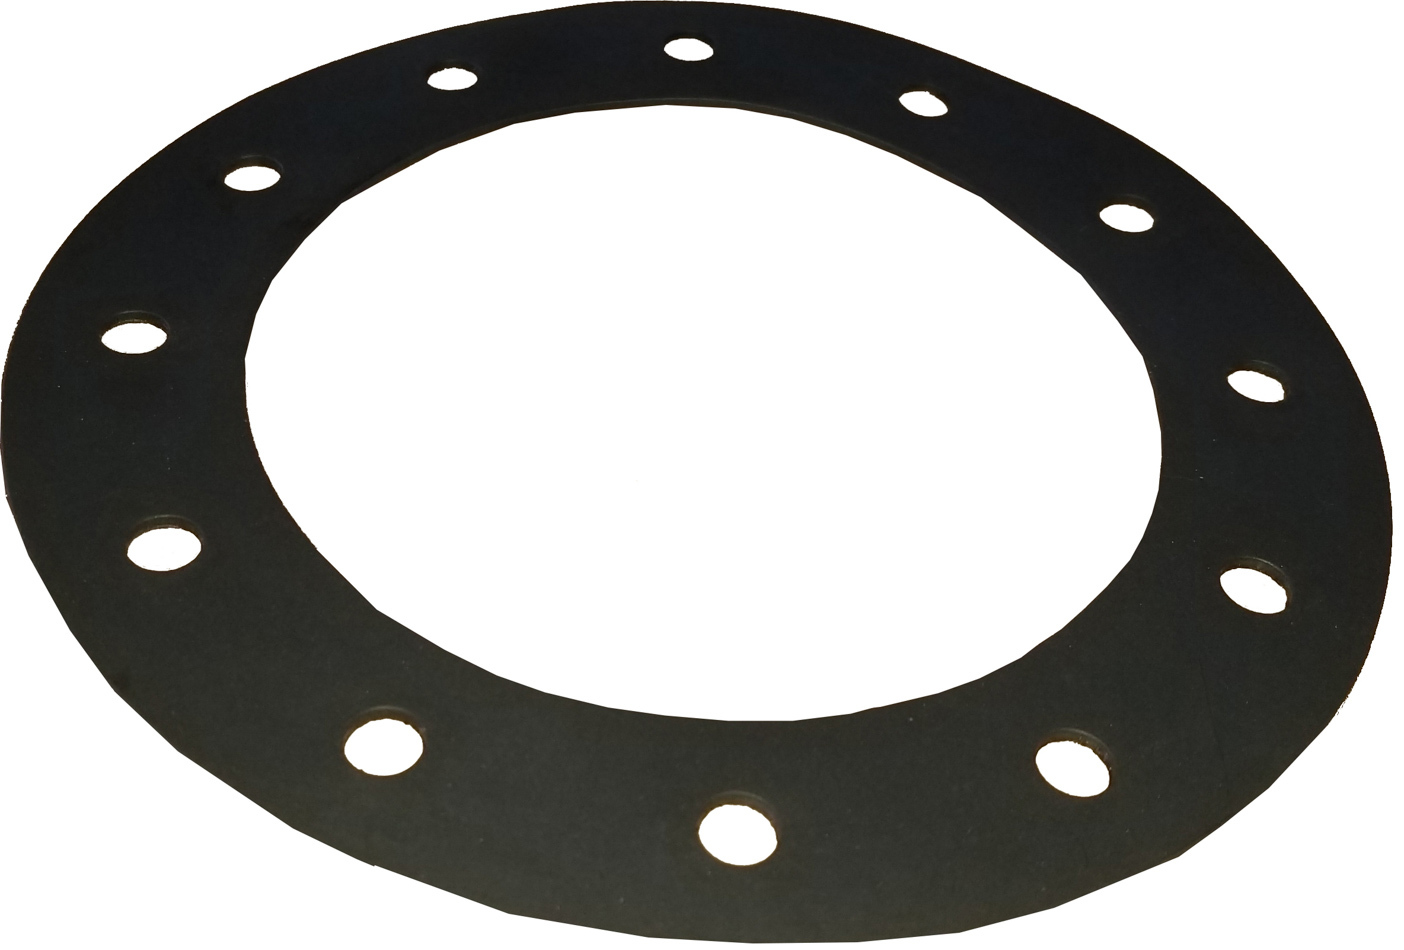 Rci Gasket Fill Neck 12-Hole for Aluminum Cells